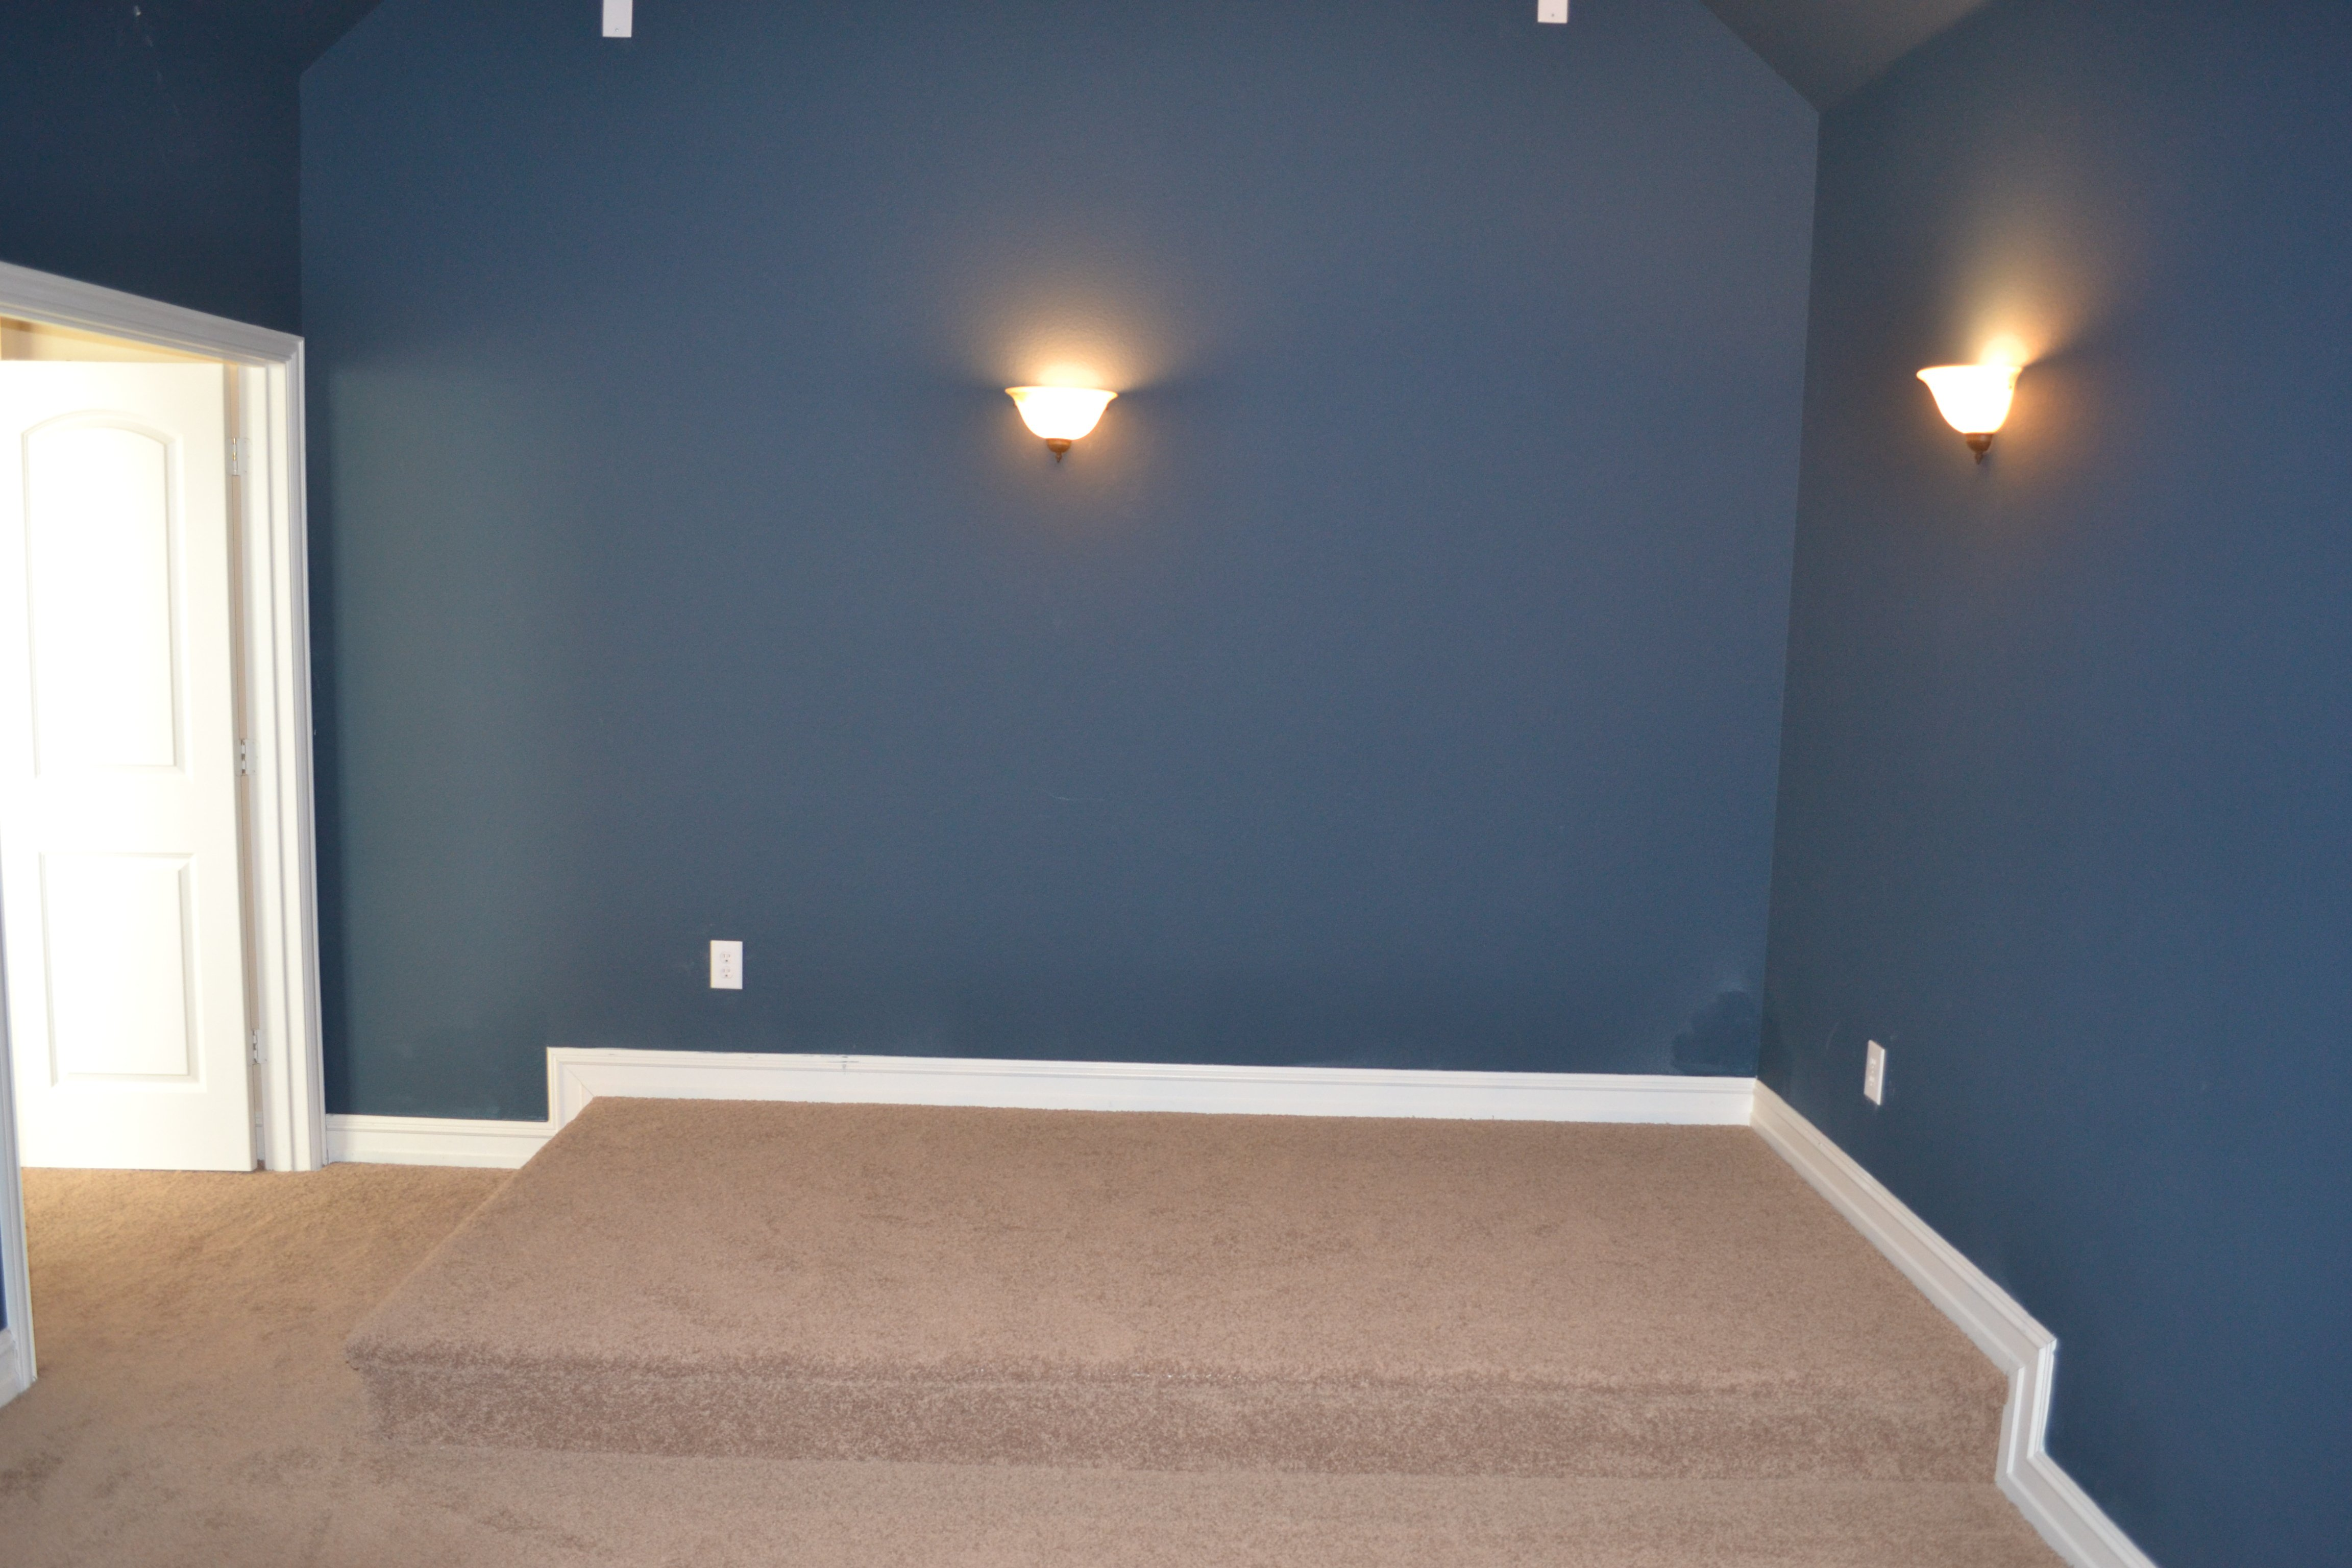 Speakers too high on wall? - AVS Forum | Home Theater Discussions ...